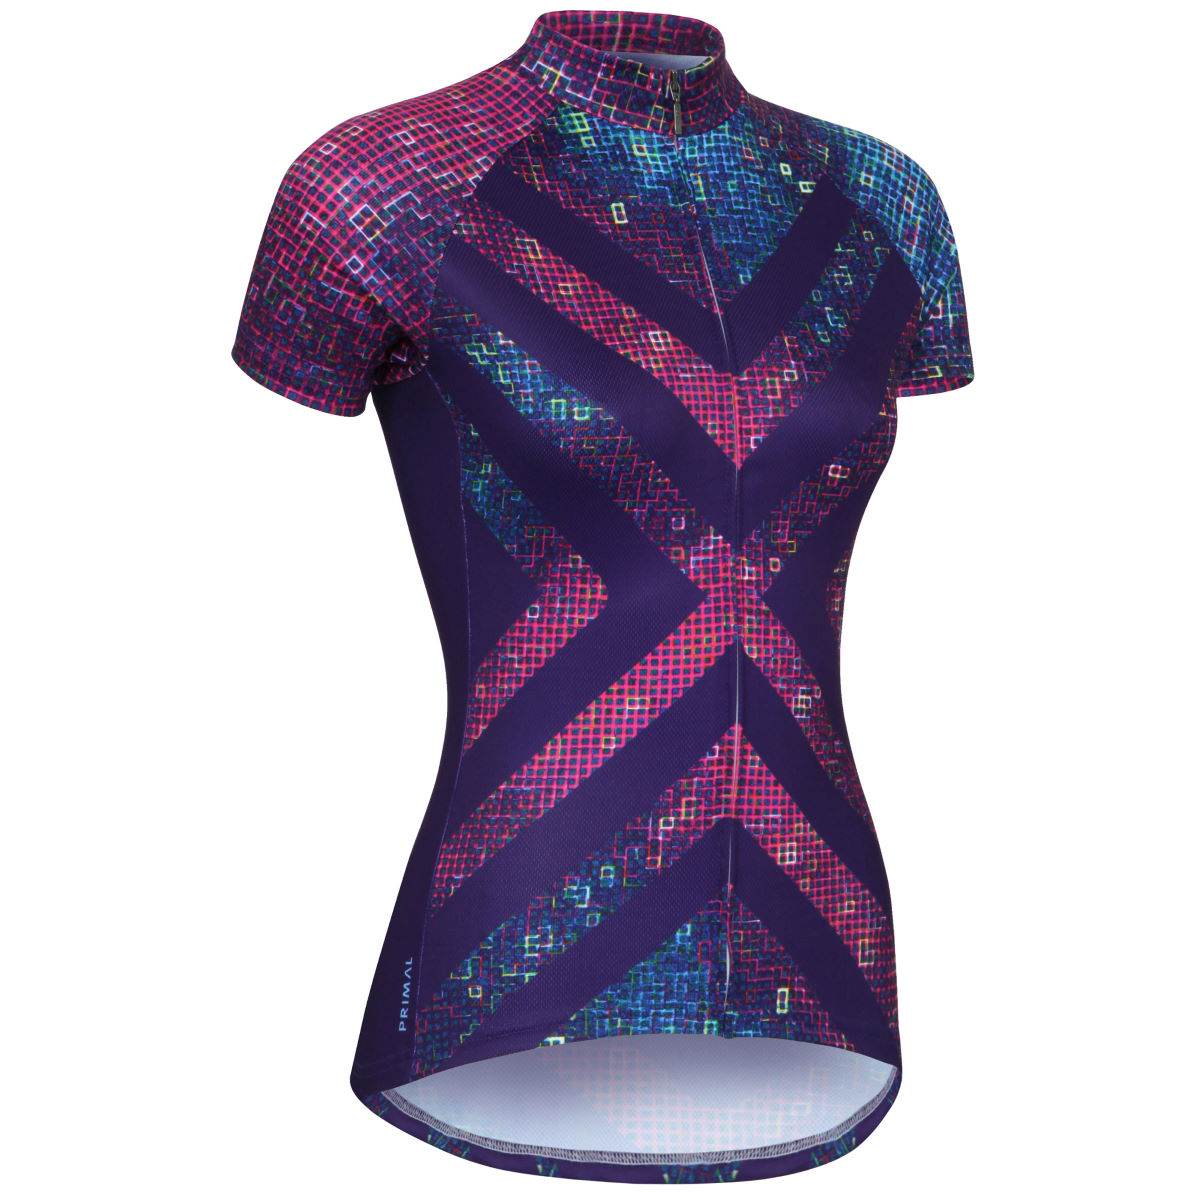 Maillot Femme Primal Pixel8 (coupe sportive) - 2XL Multi Coloured